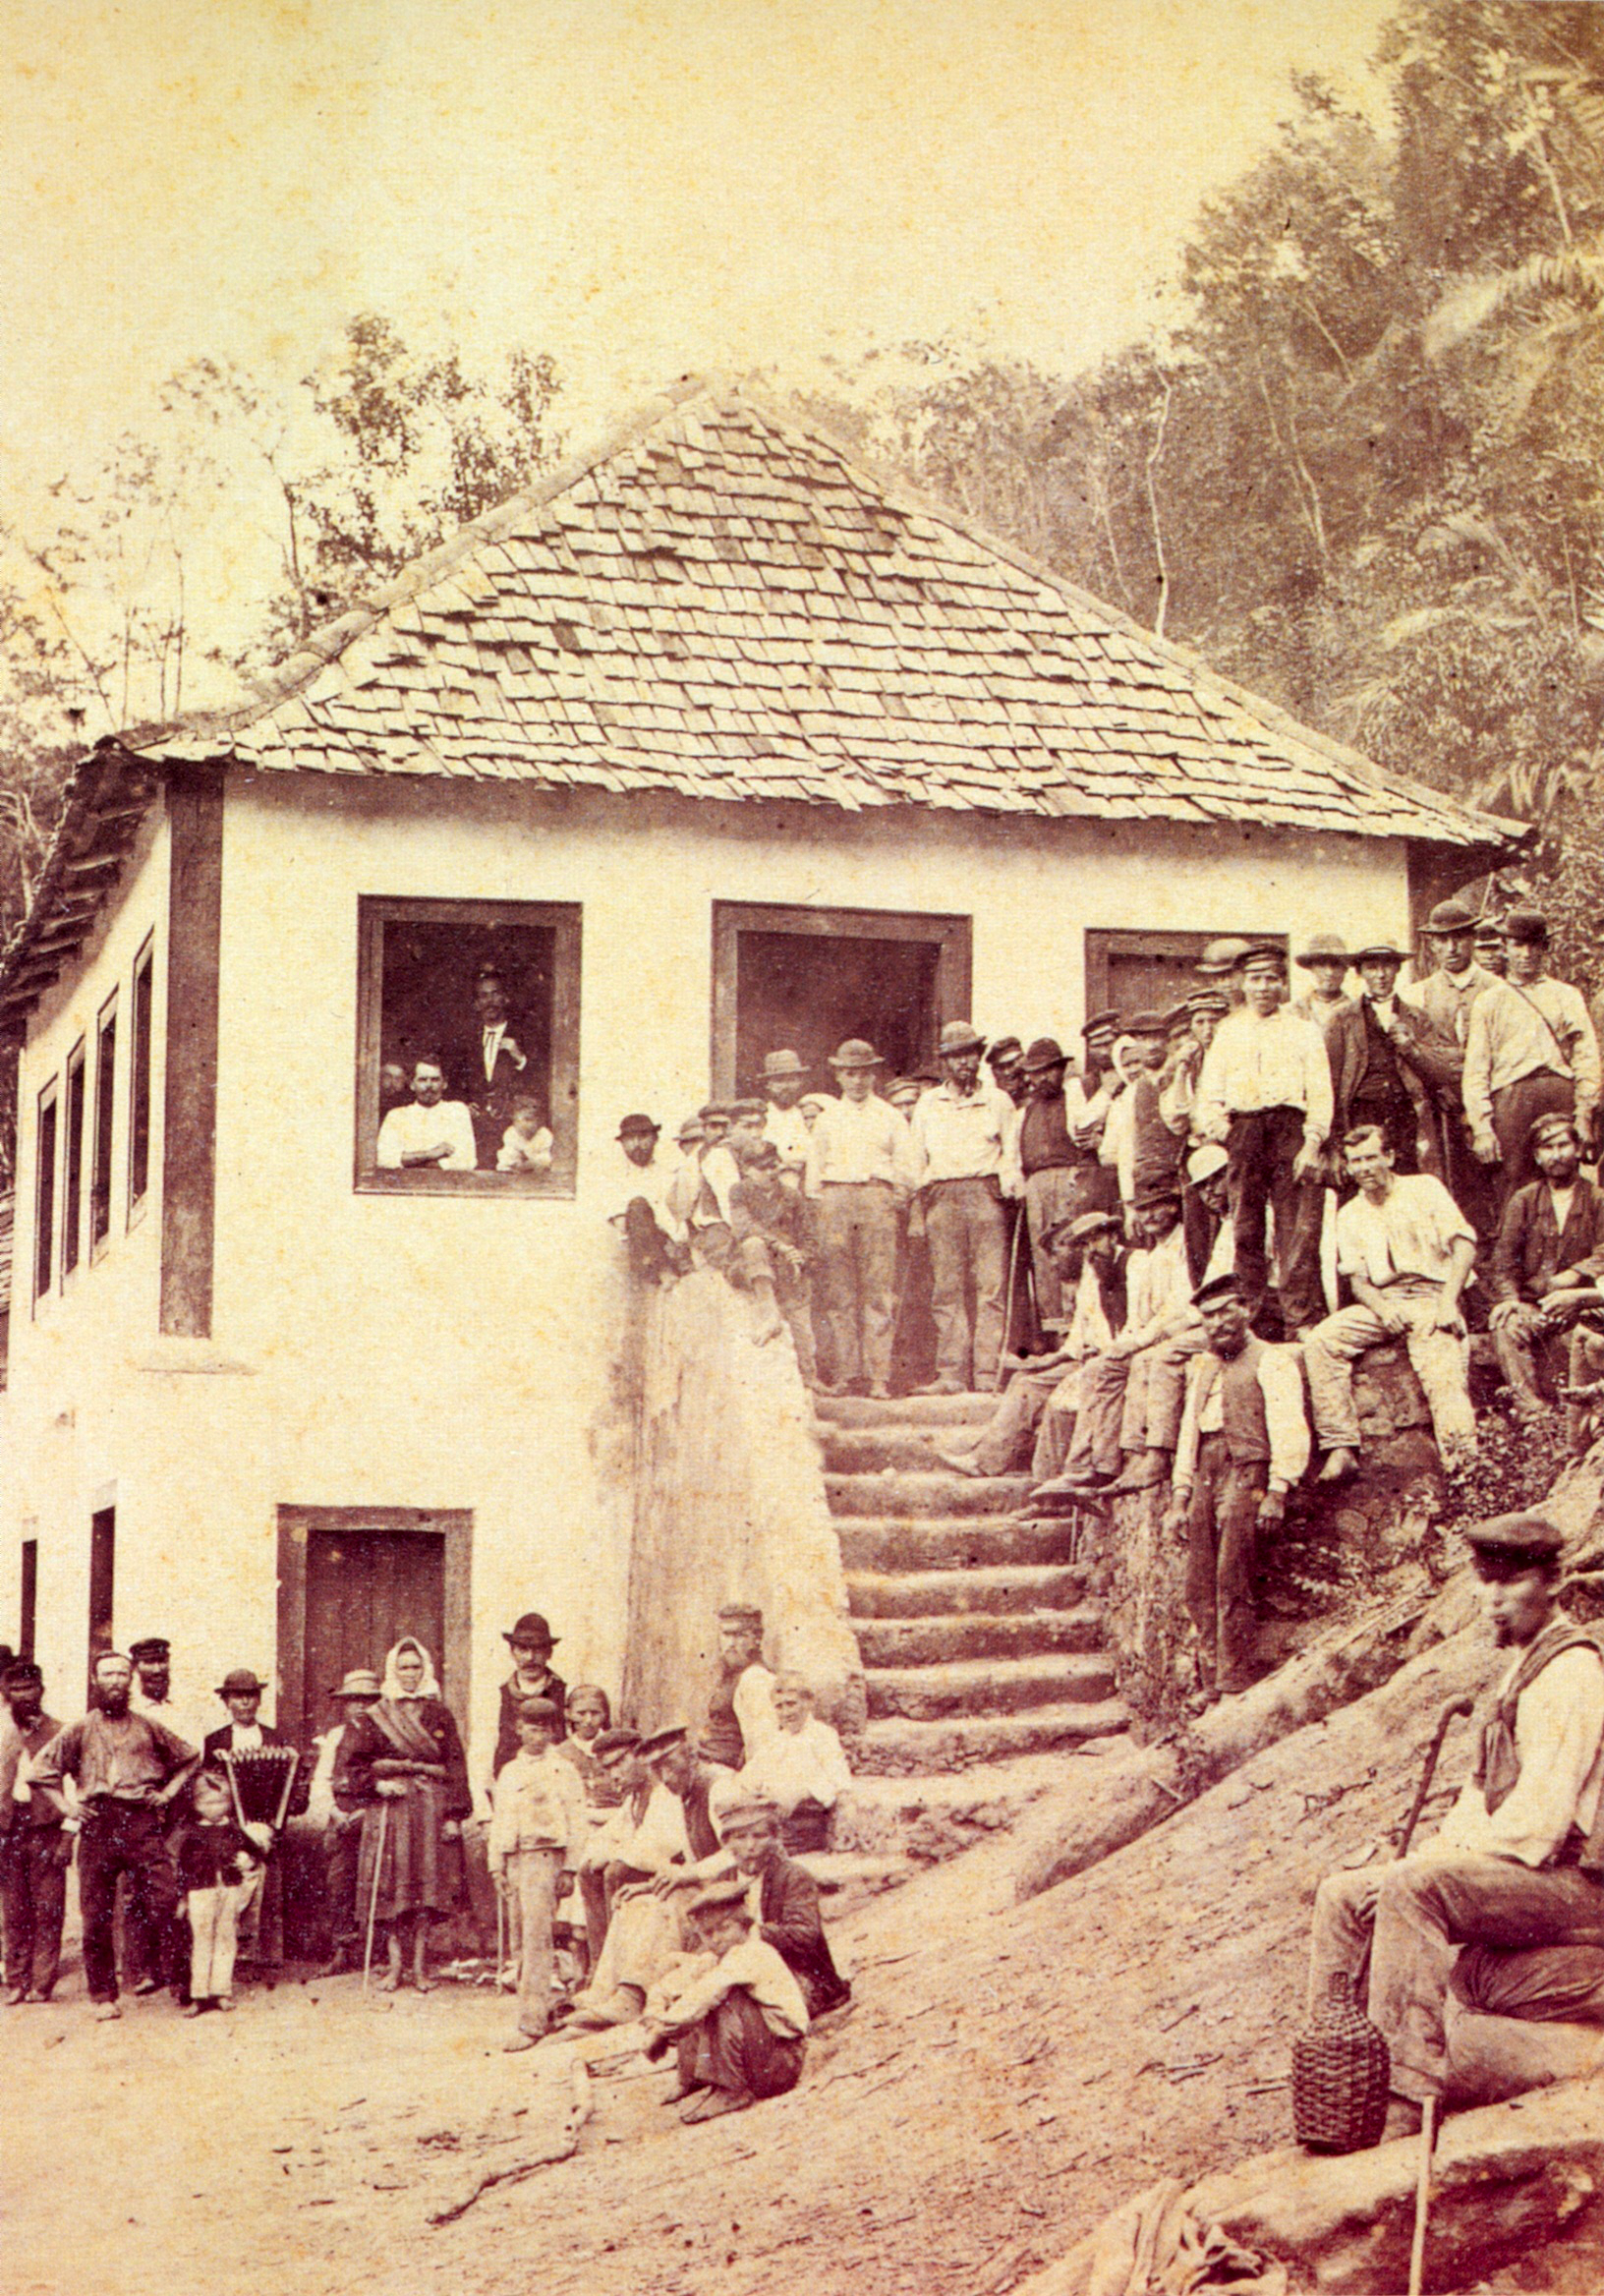 File:Germans and luxembourgers in brazil 1875.jpg